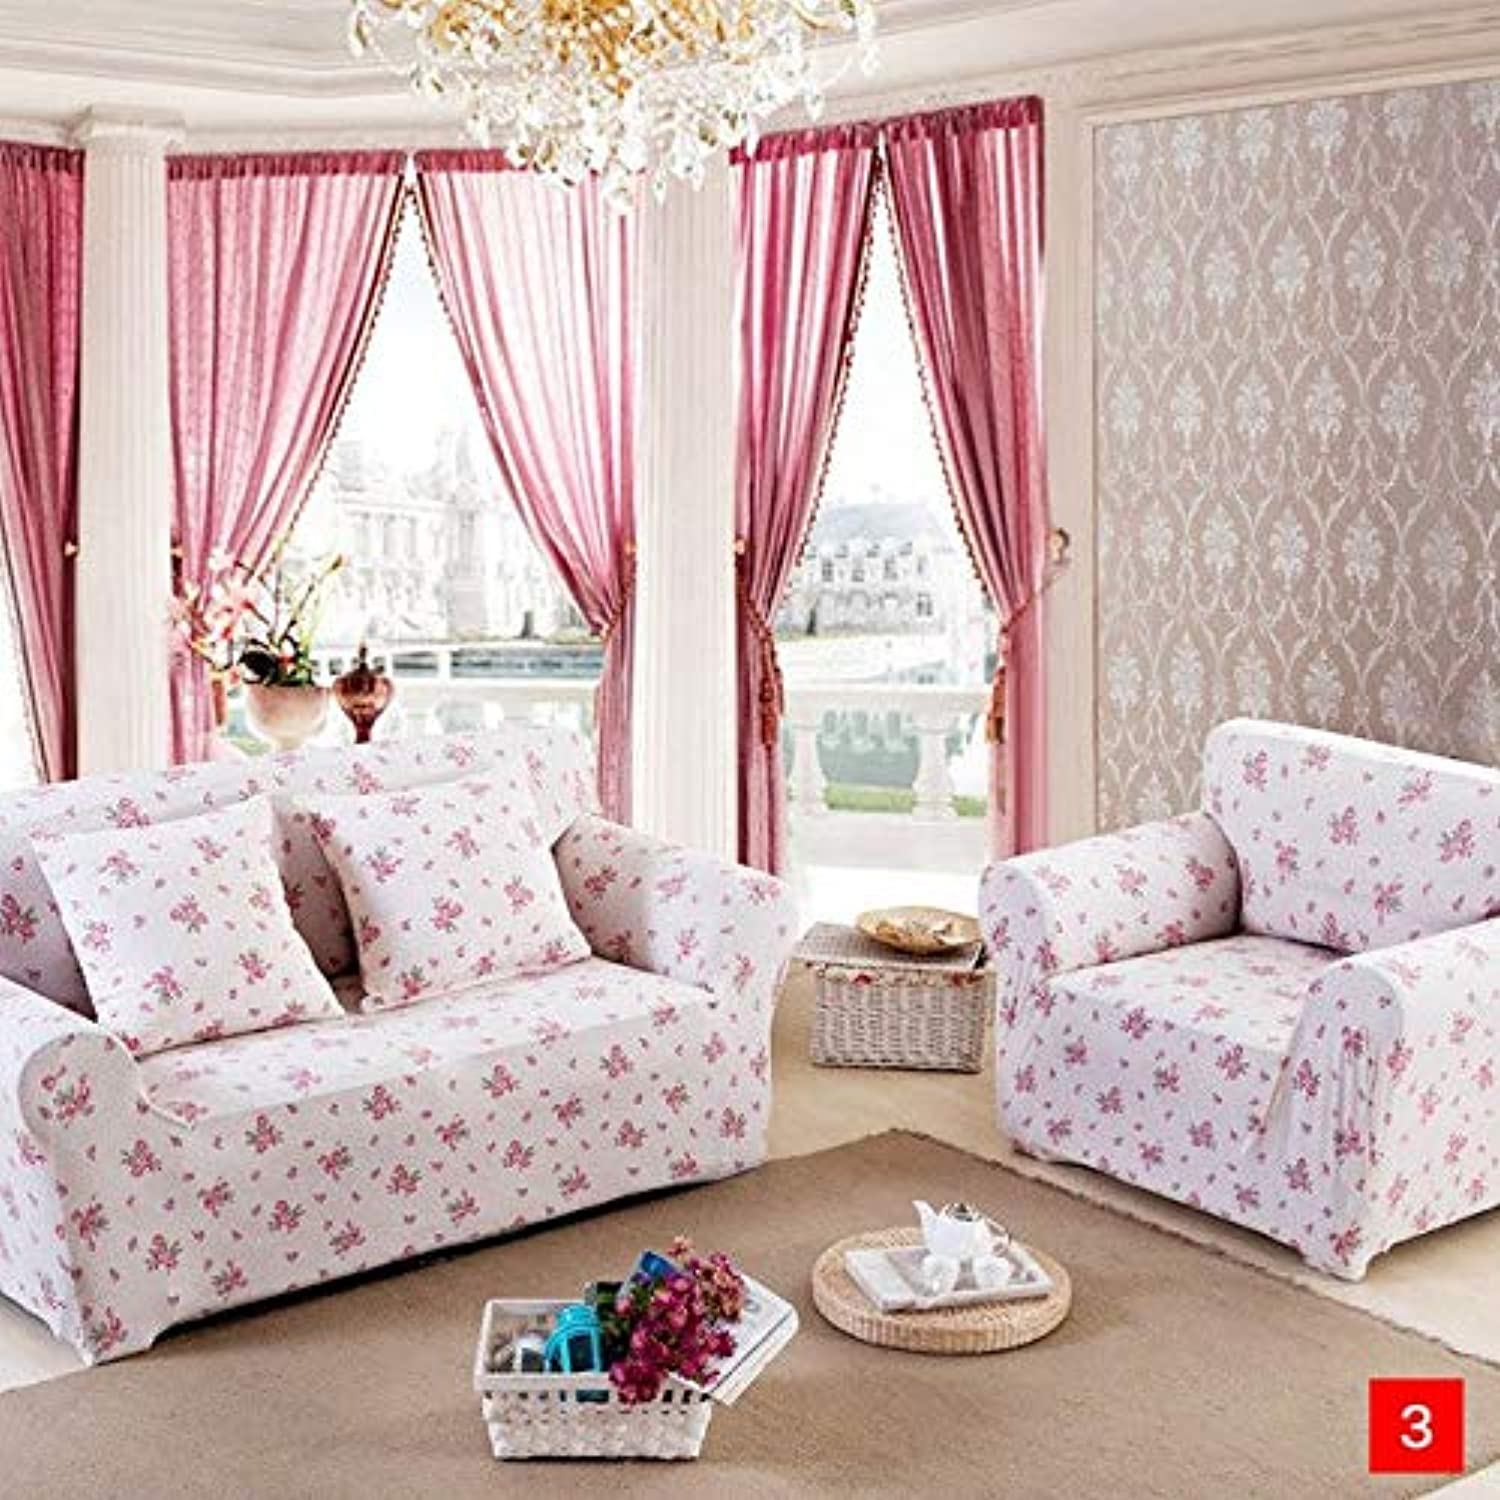 Plaid Sofa Cover on The Stretch Sofa Cushions Home Decoration Blanket for The Couch Cover Modern Sofafor Living Room   3, Two Seater